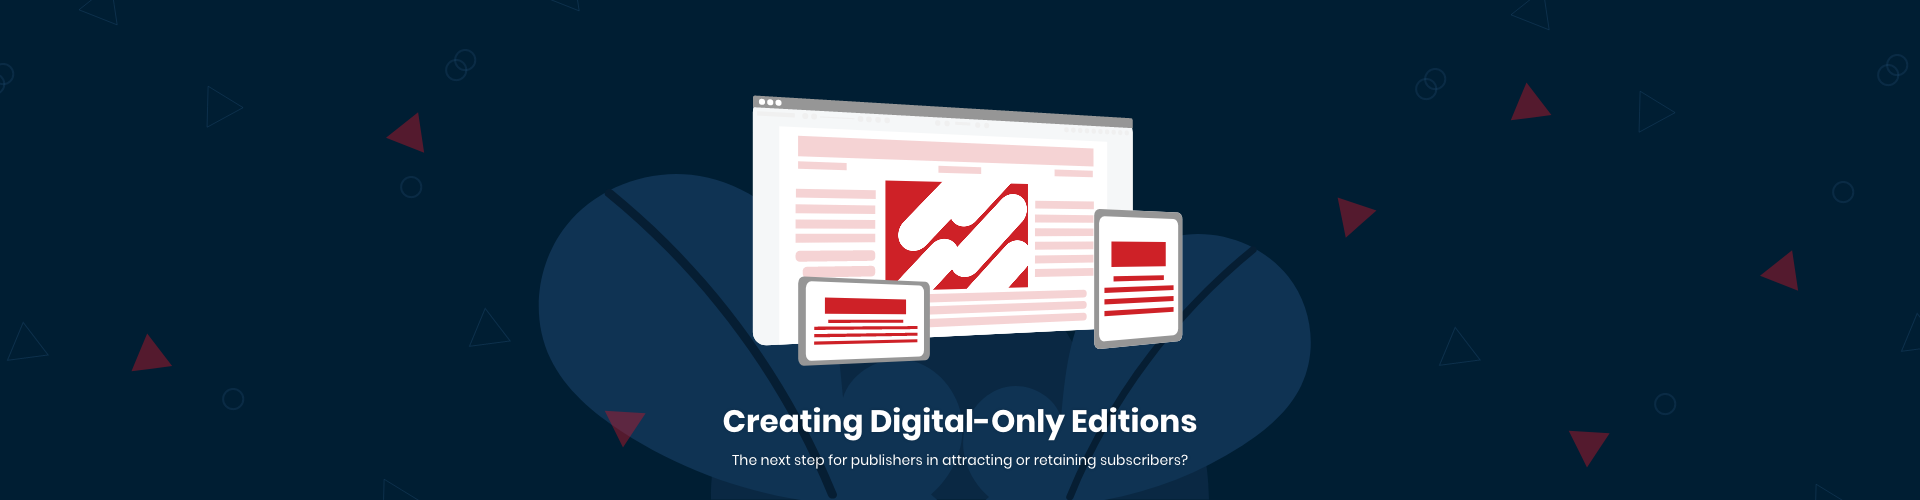 Image of Exploring Digital-Only Editions